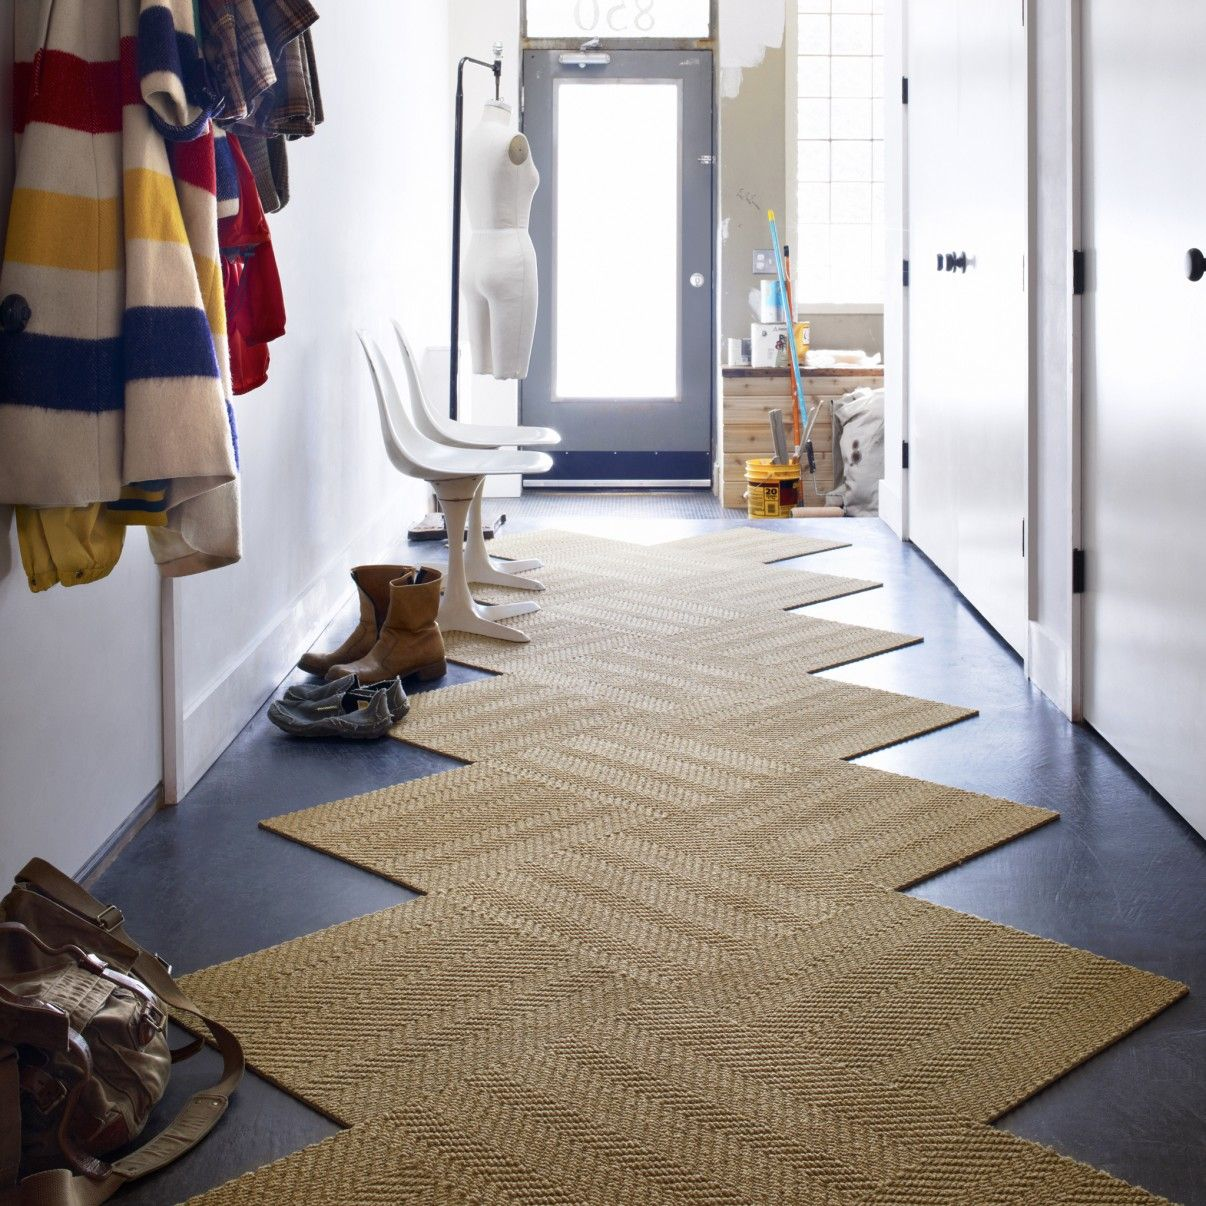 Need A Custom Size Rug For Hallway Or Entryway Use Carpet Tiles To